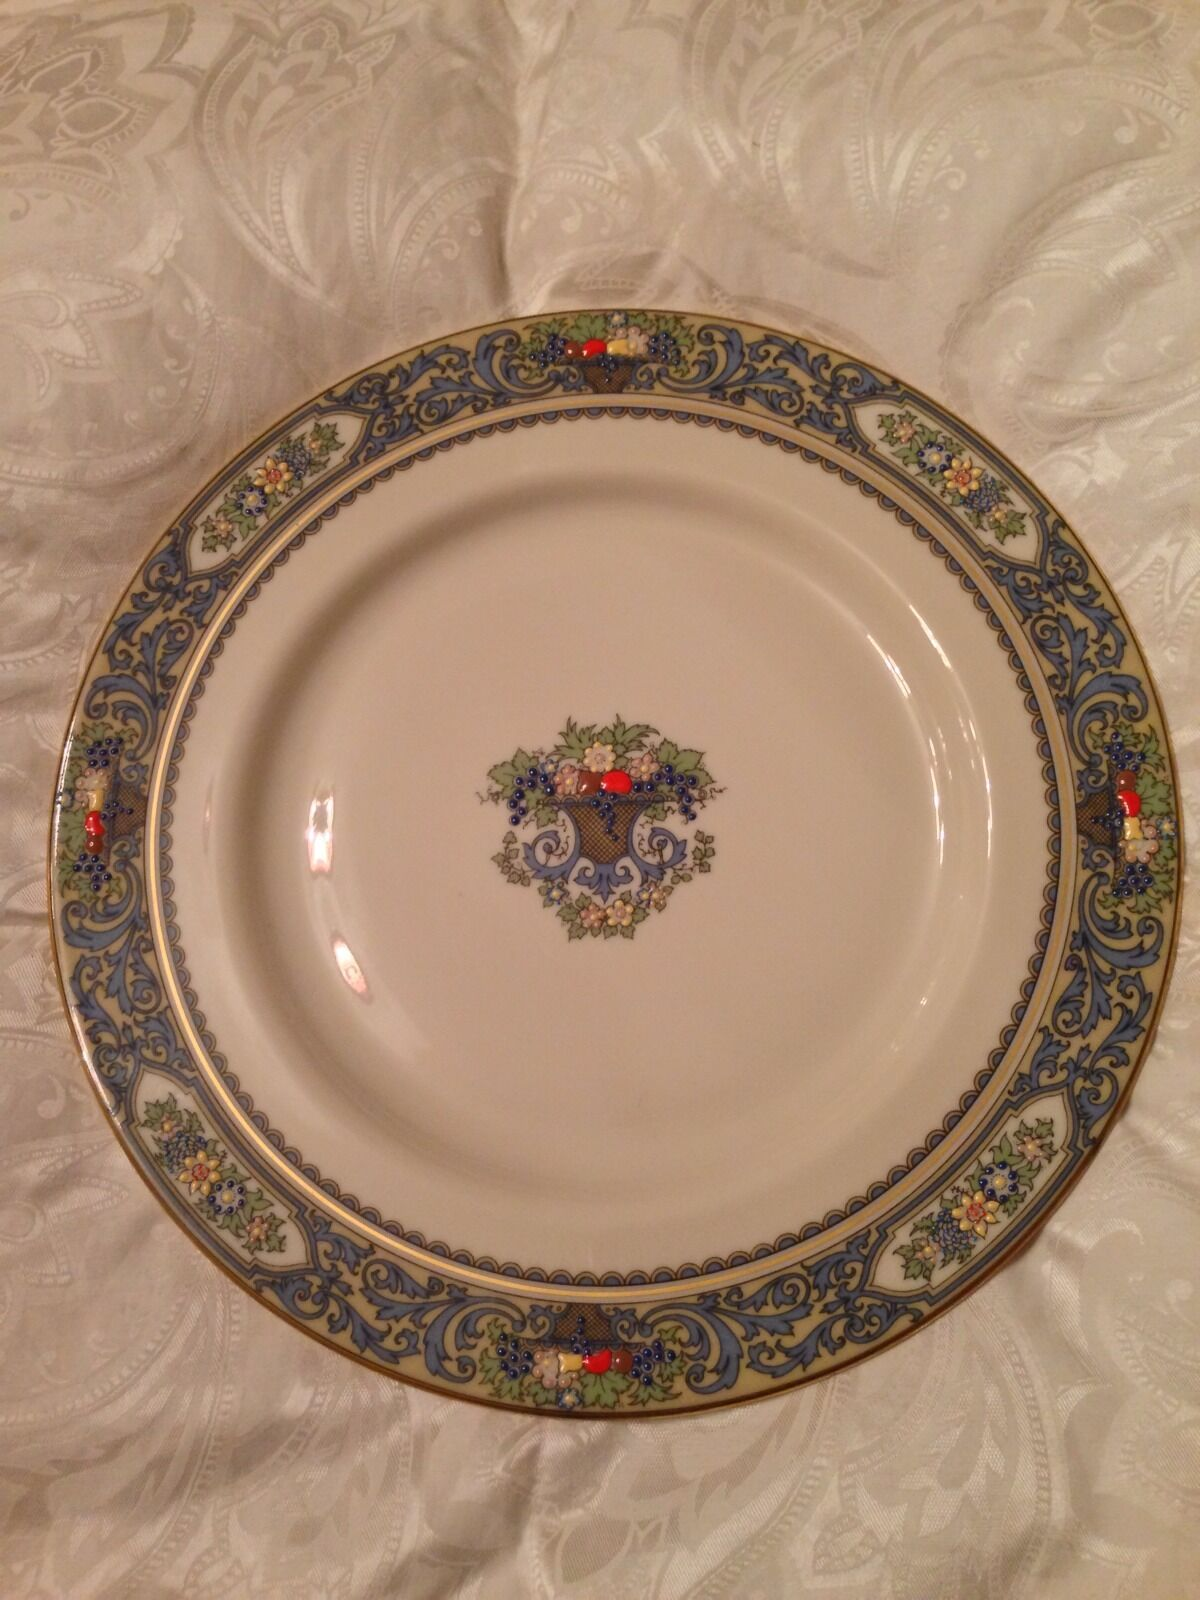 Picture 1 of 5 ... & Lenox Autumn Gold Back Stamp Dinner Plate | eBay